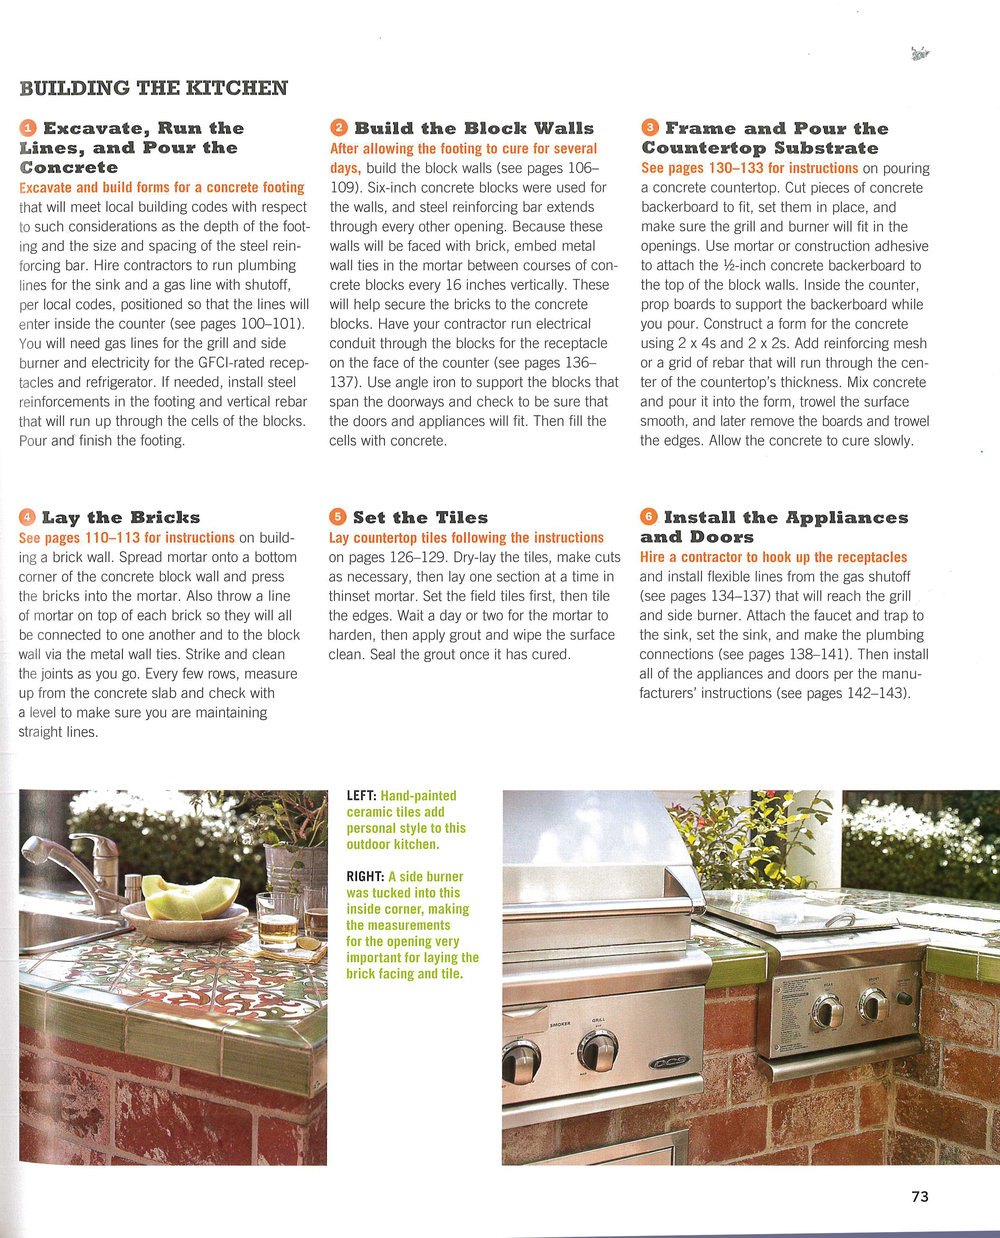 85ae4-sunset-bbq-pg10.jpg